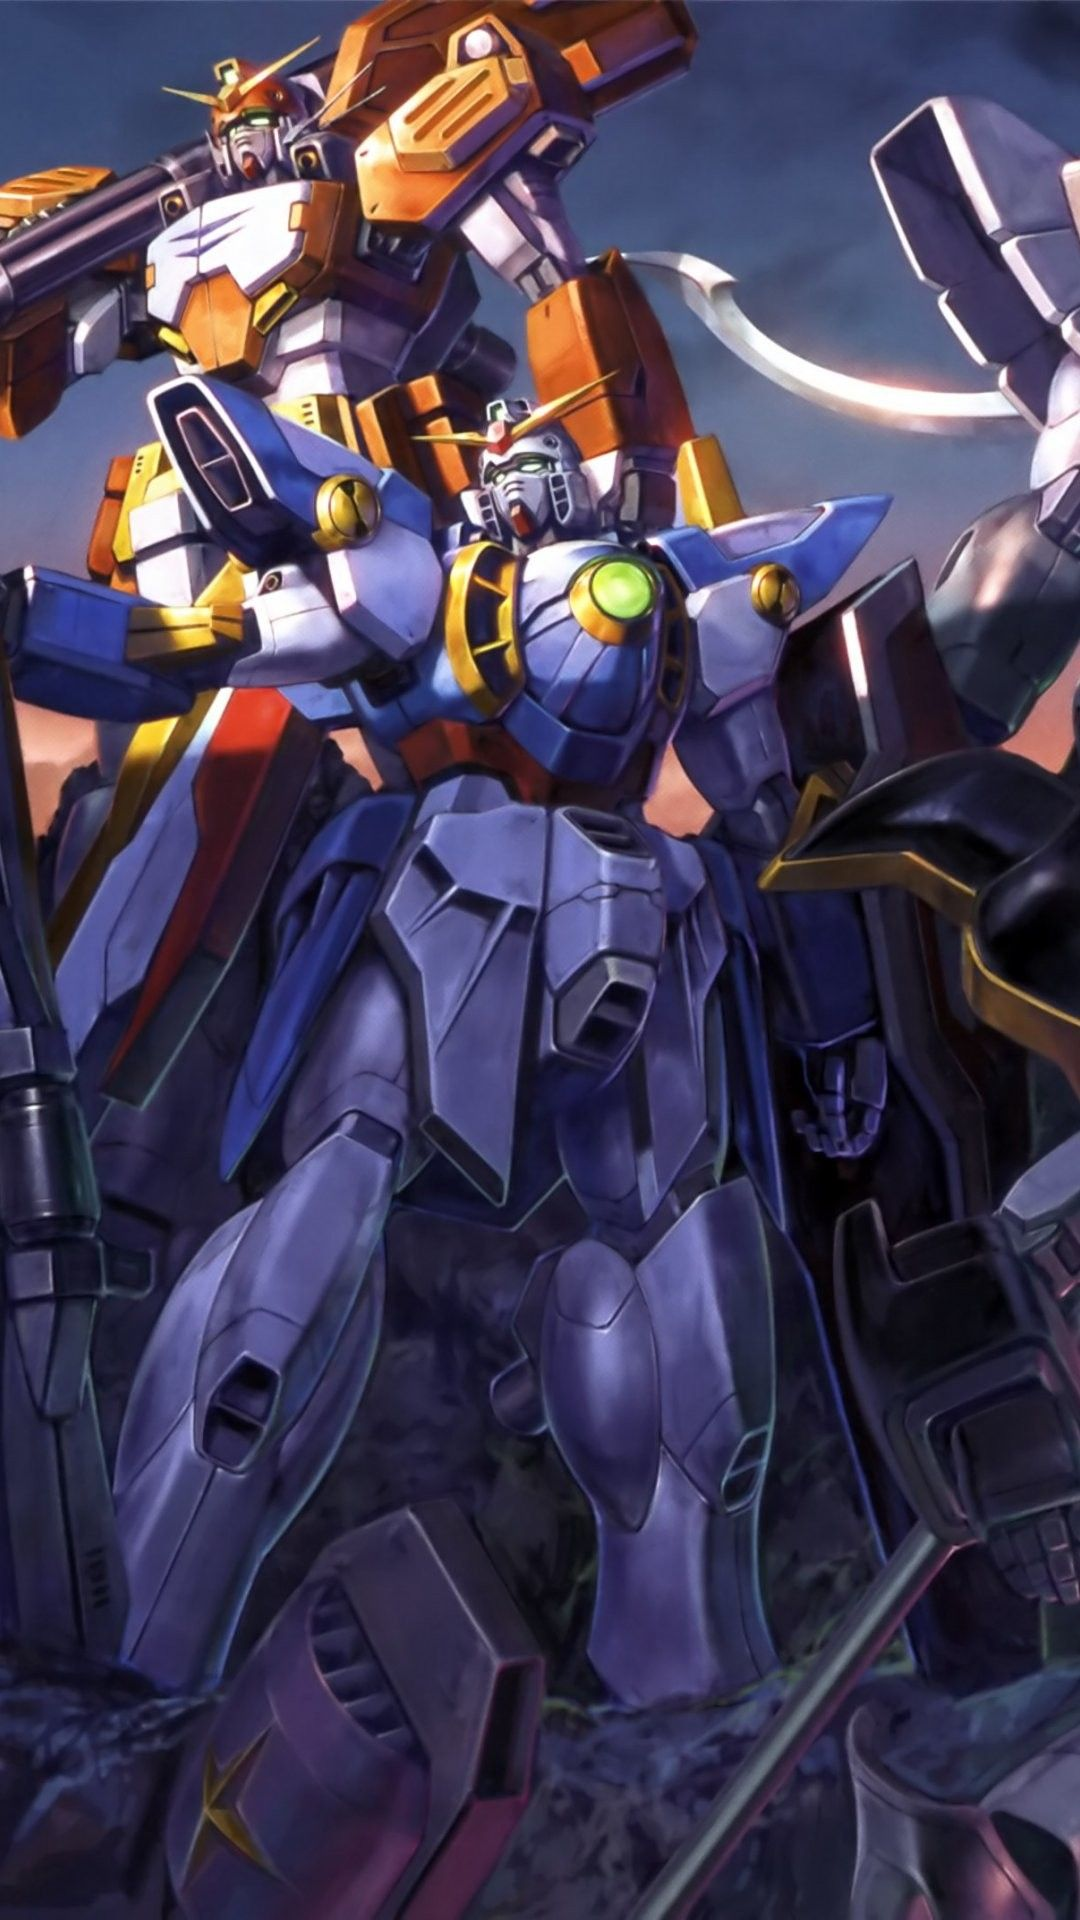 Gundam iPhone 6 Plus Wallpaper 10616 Anime iPhone 6 Plus